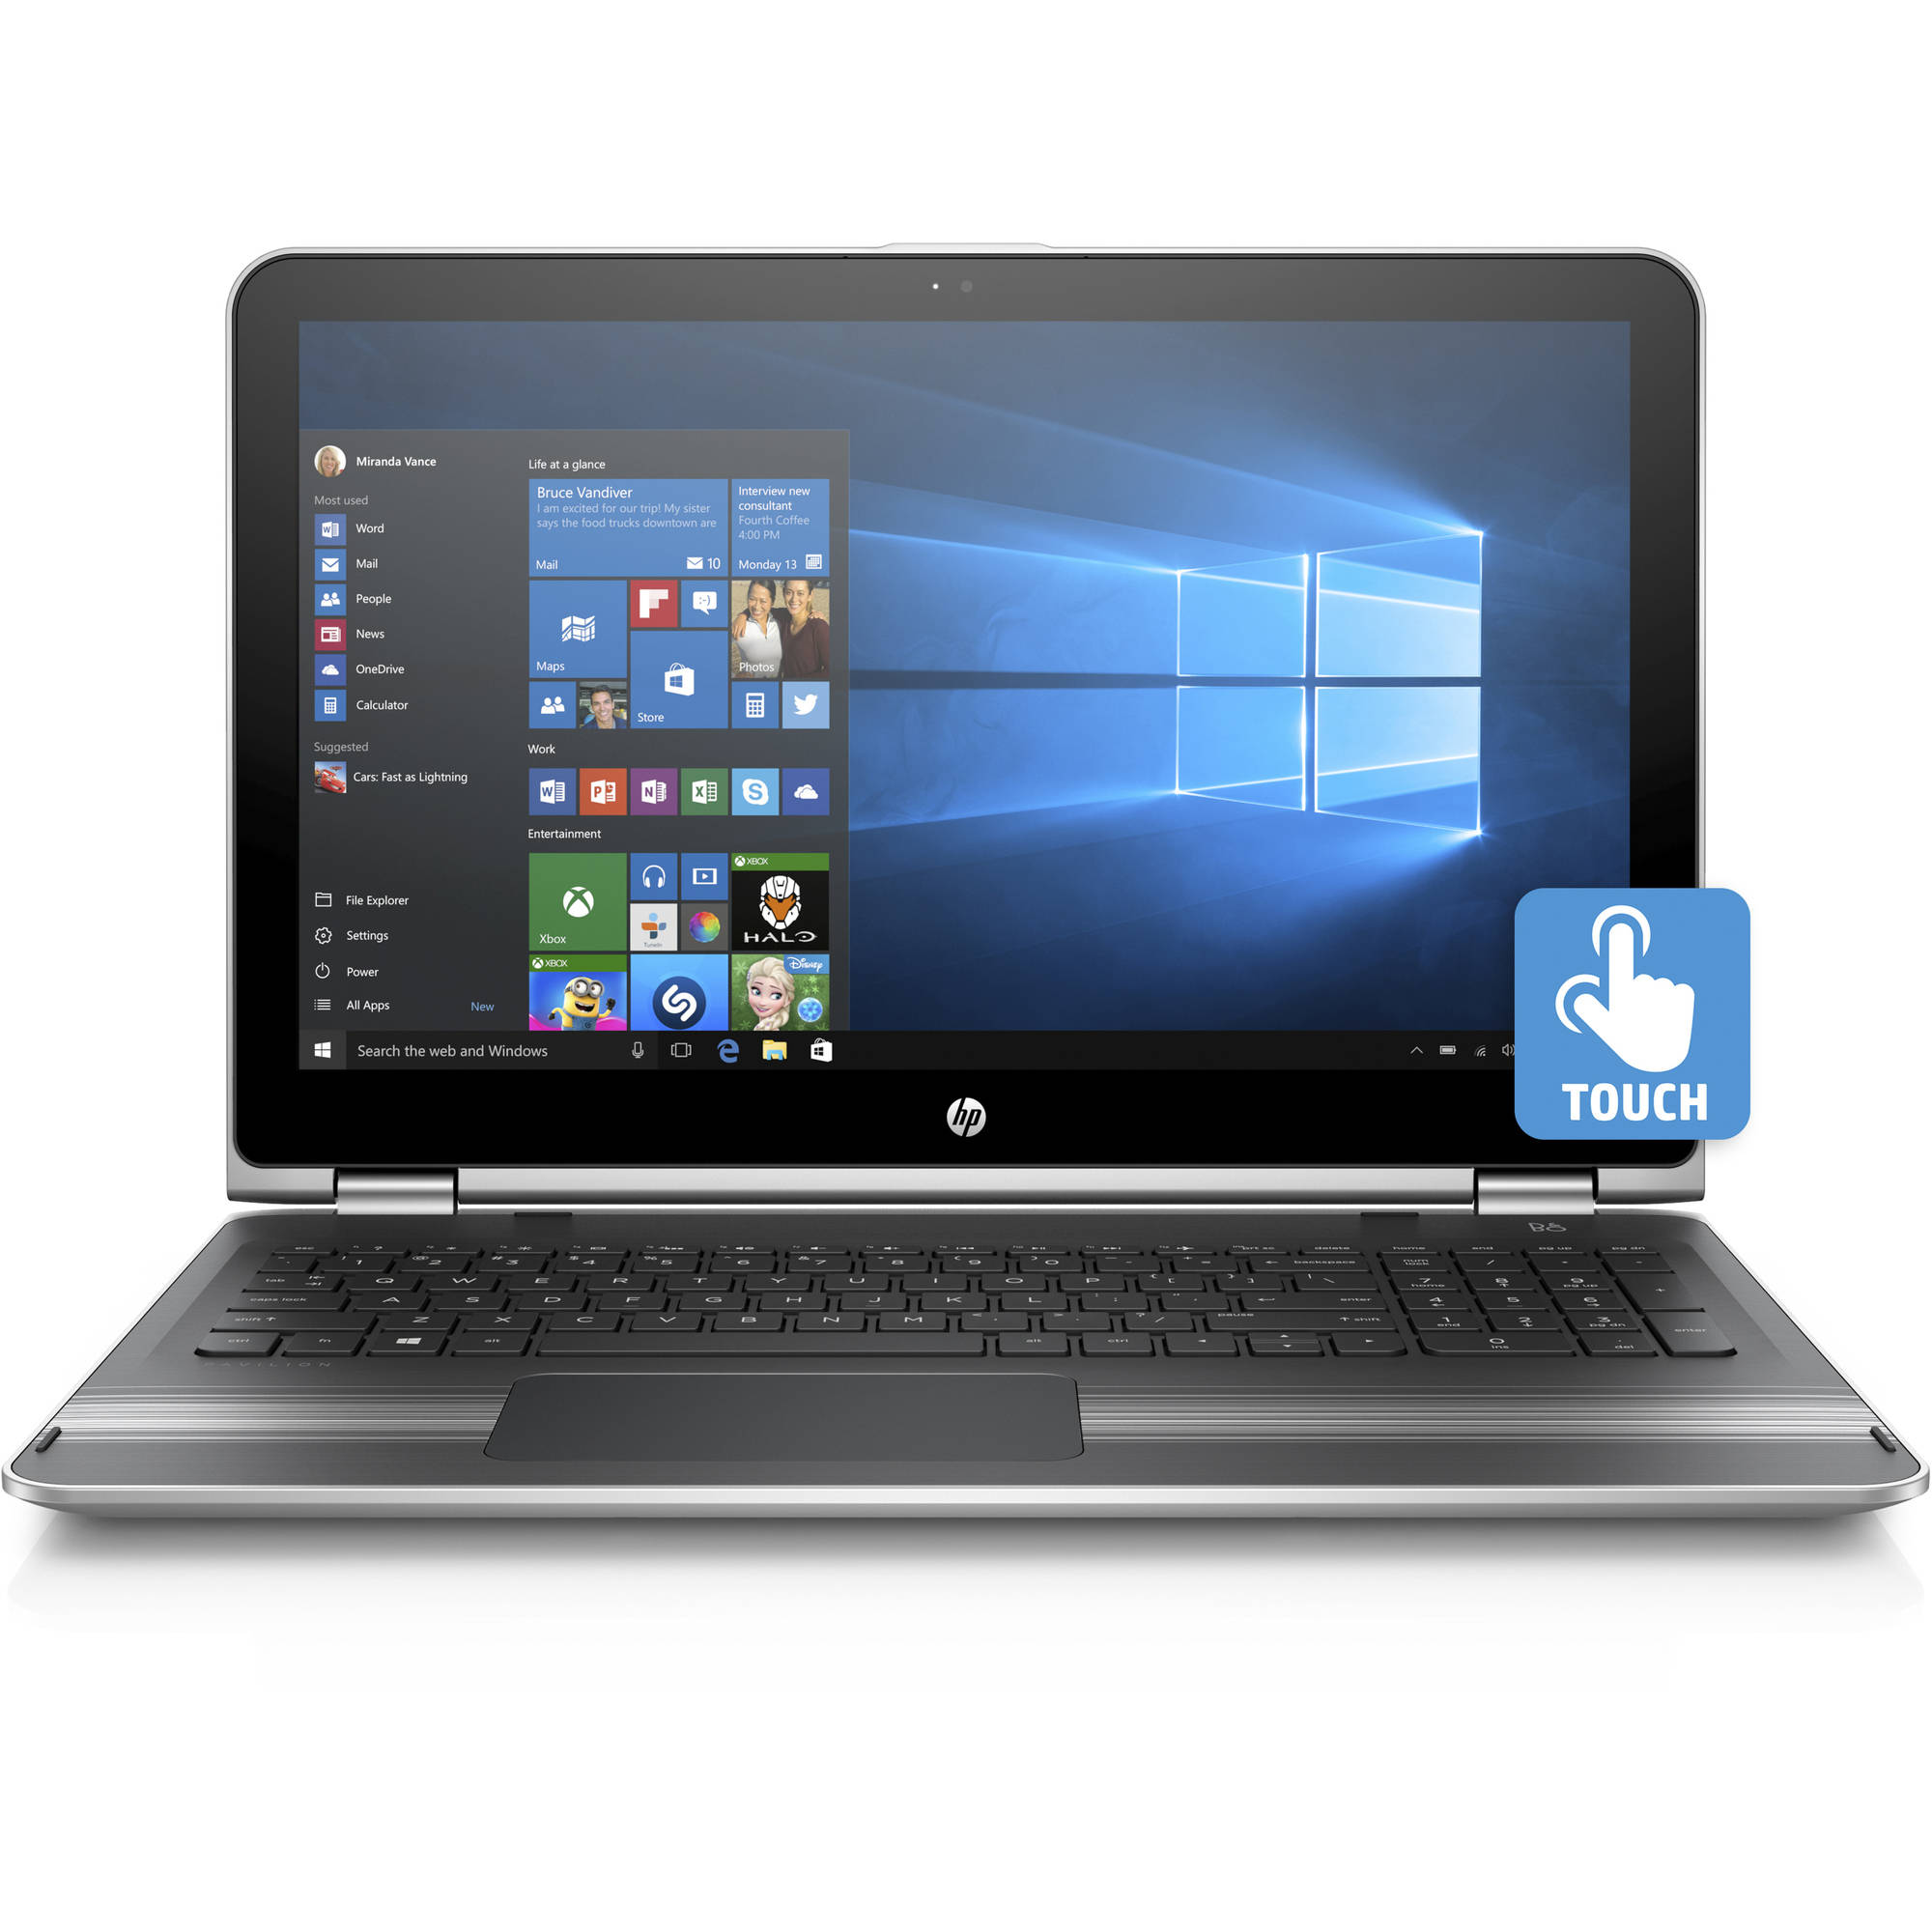 Refurbished HP Pavilion x360 15-bk020wm 15.6